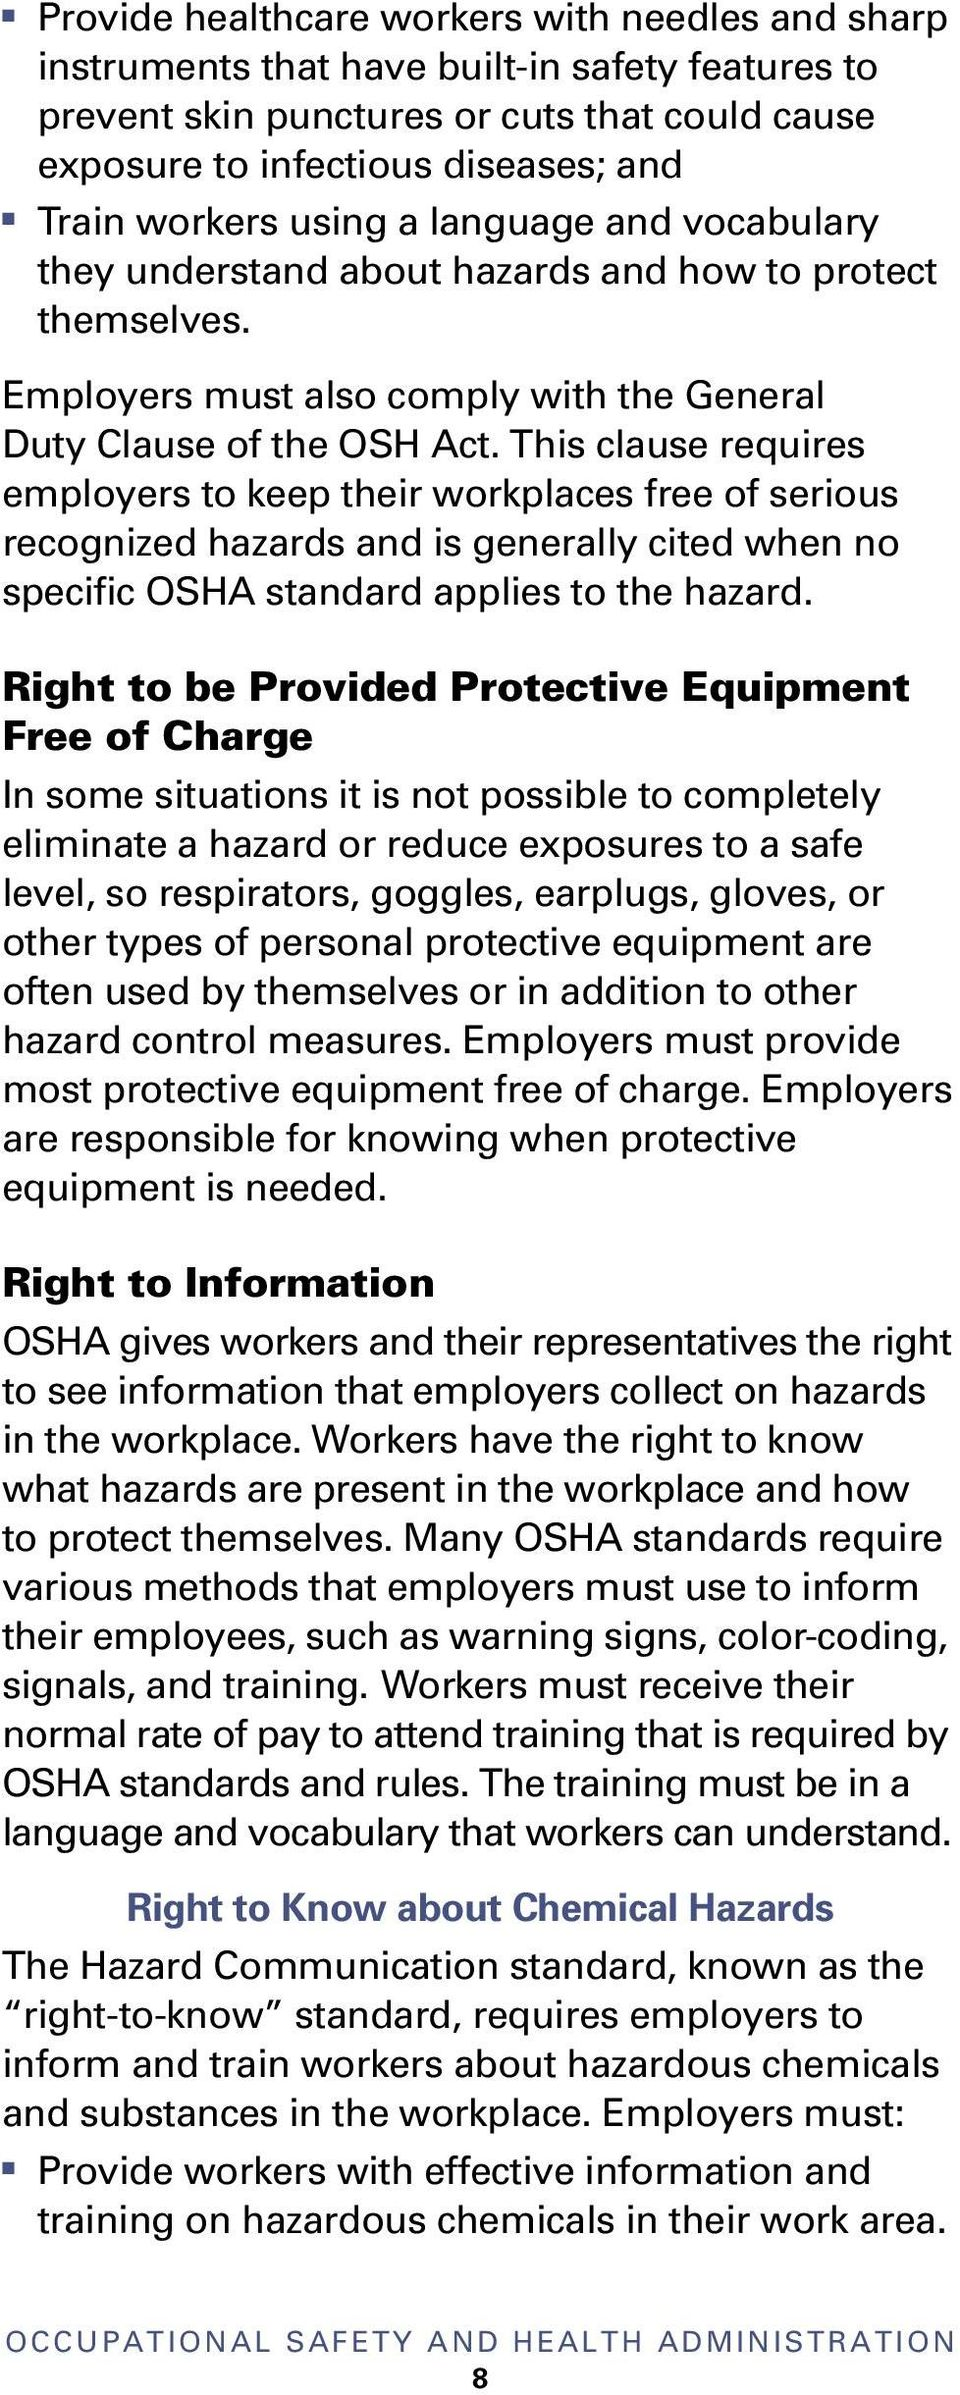 This clause requires employers to keep their workplaces free of serious recogized hazards ad is geerally cited whe o specific OSHA stadard applies to the hazard.